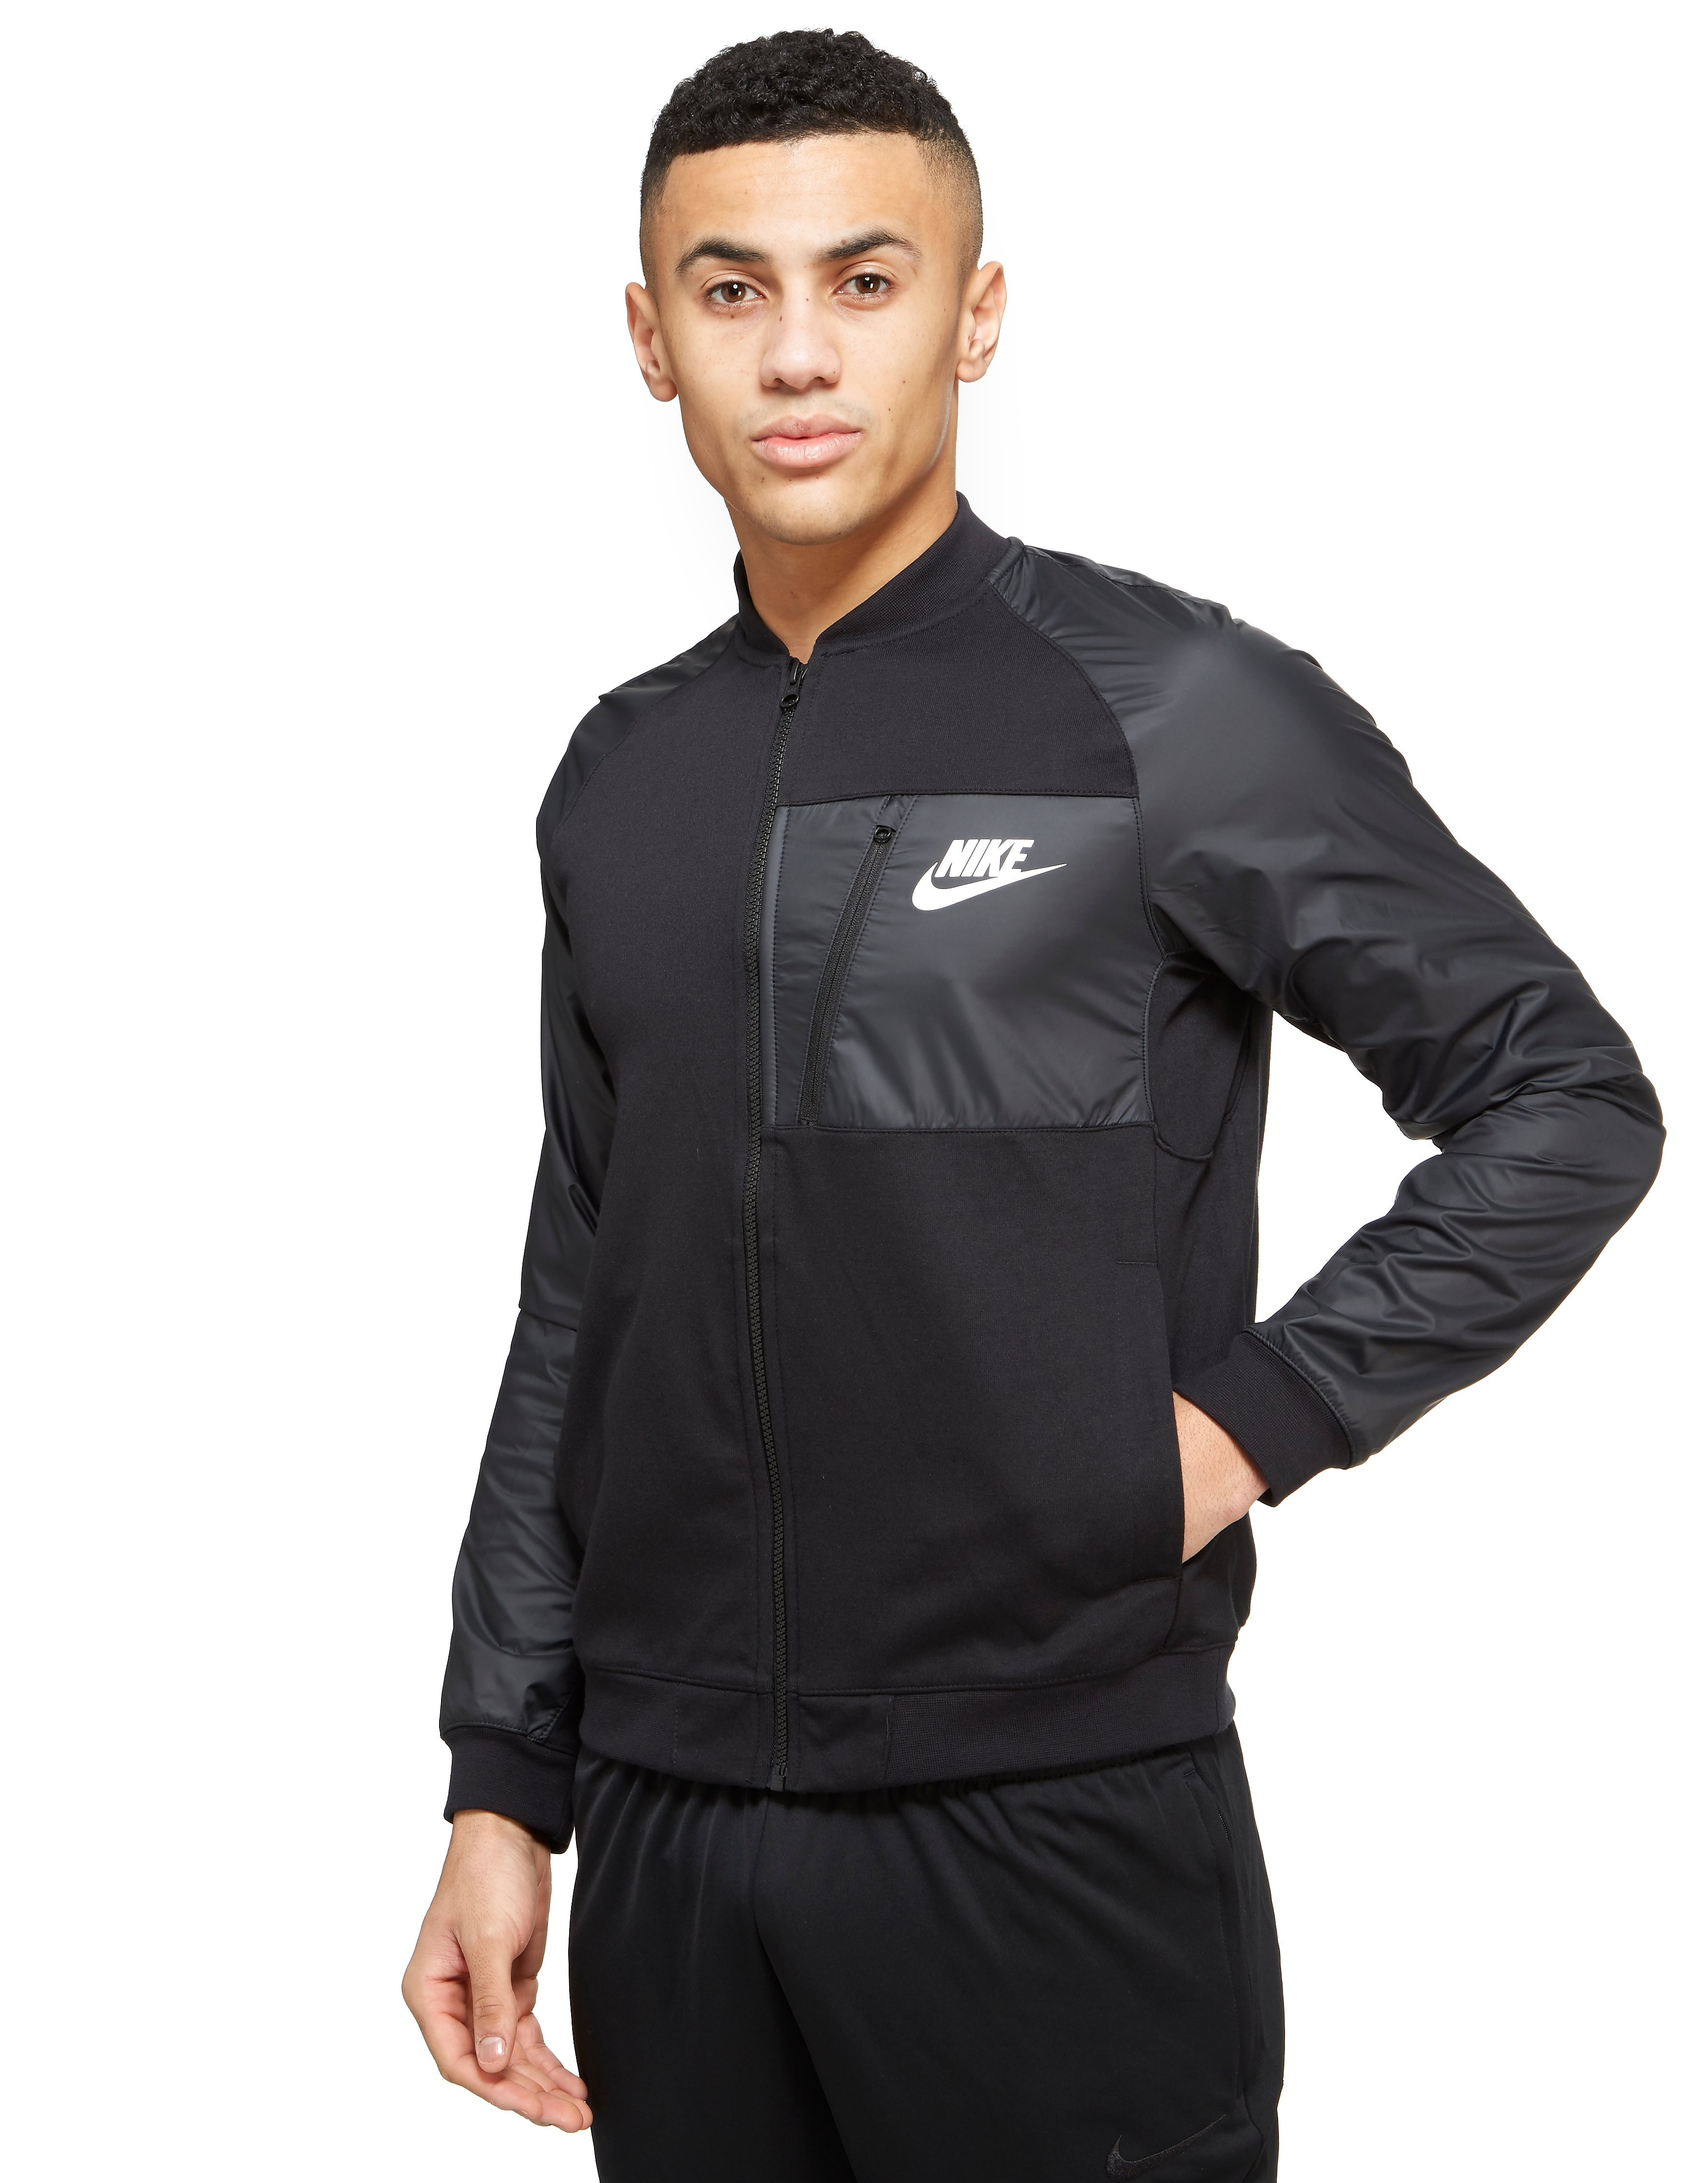 Nike Advance Baseball Jacket